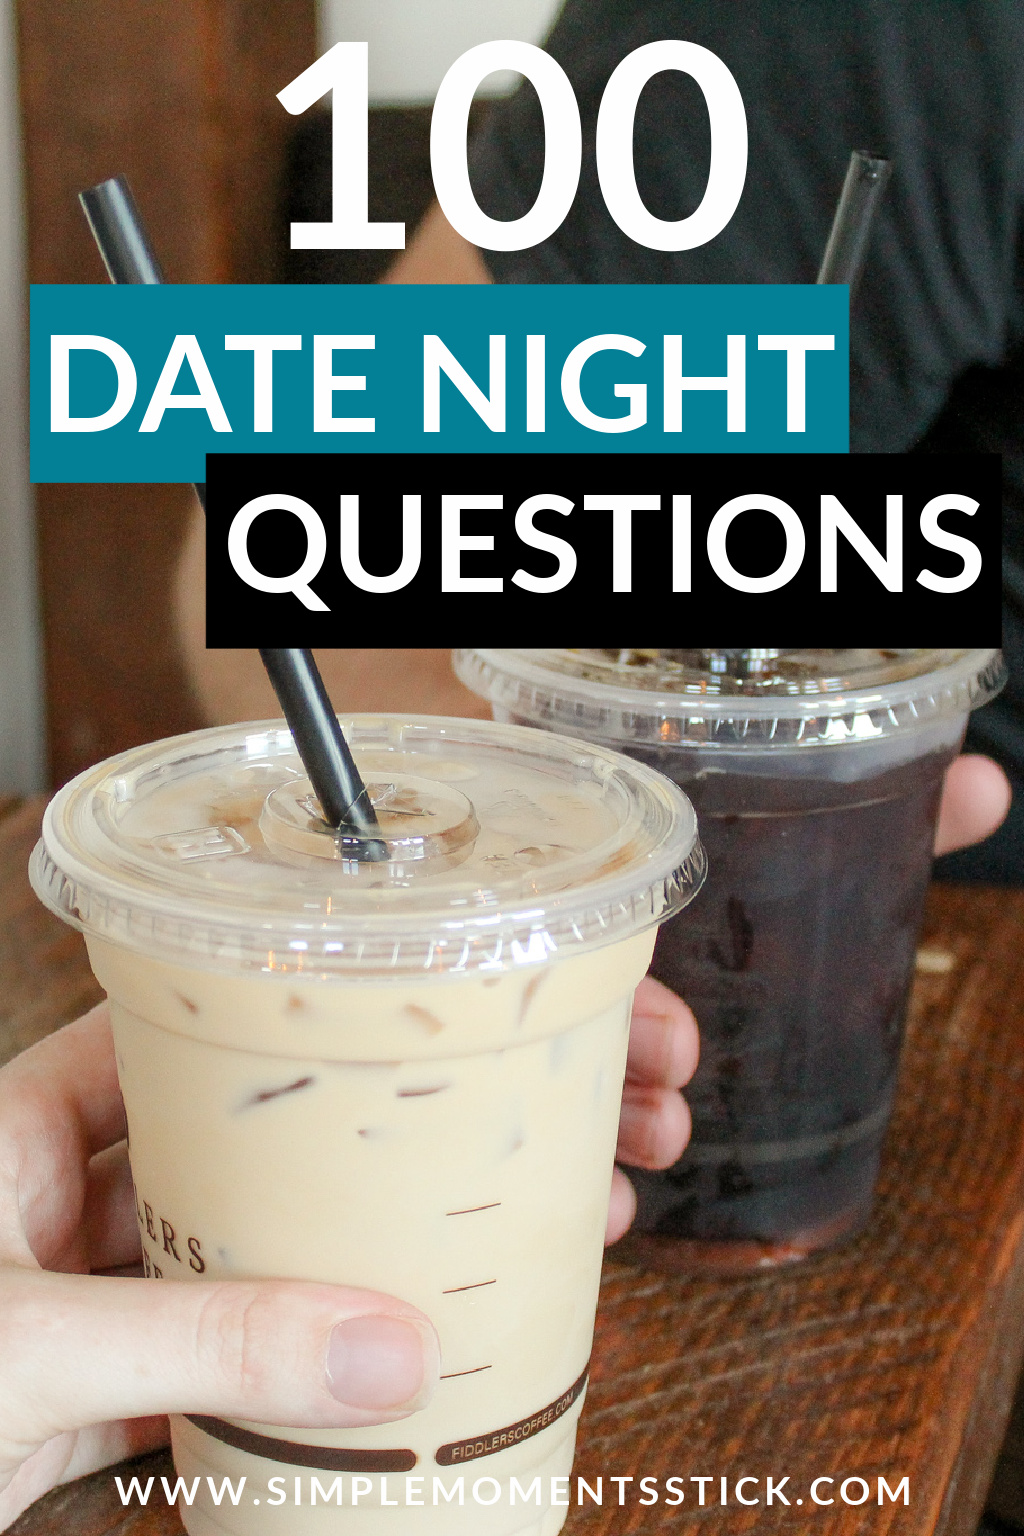 Date night questions. Questions to ask your spouse. Questions to ask your partner. Questions to ask on a date